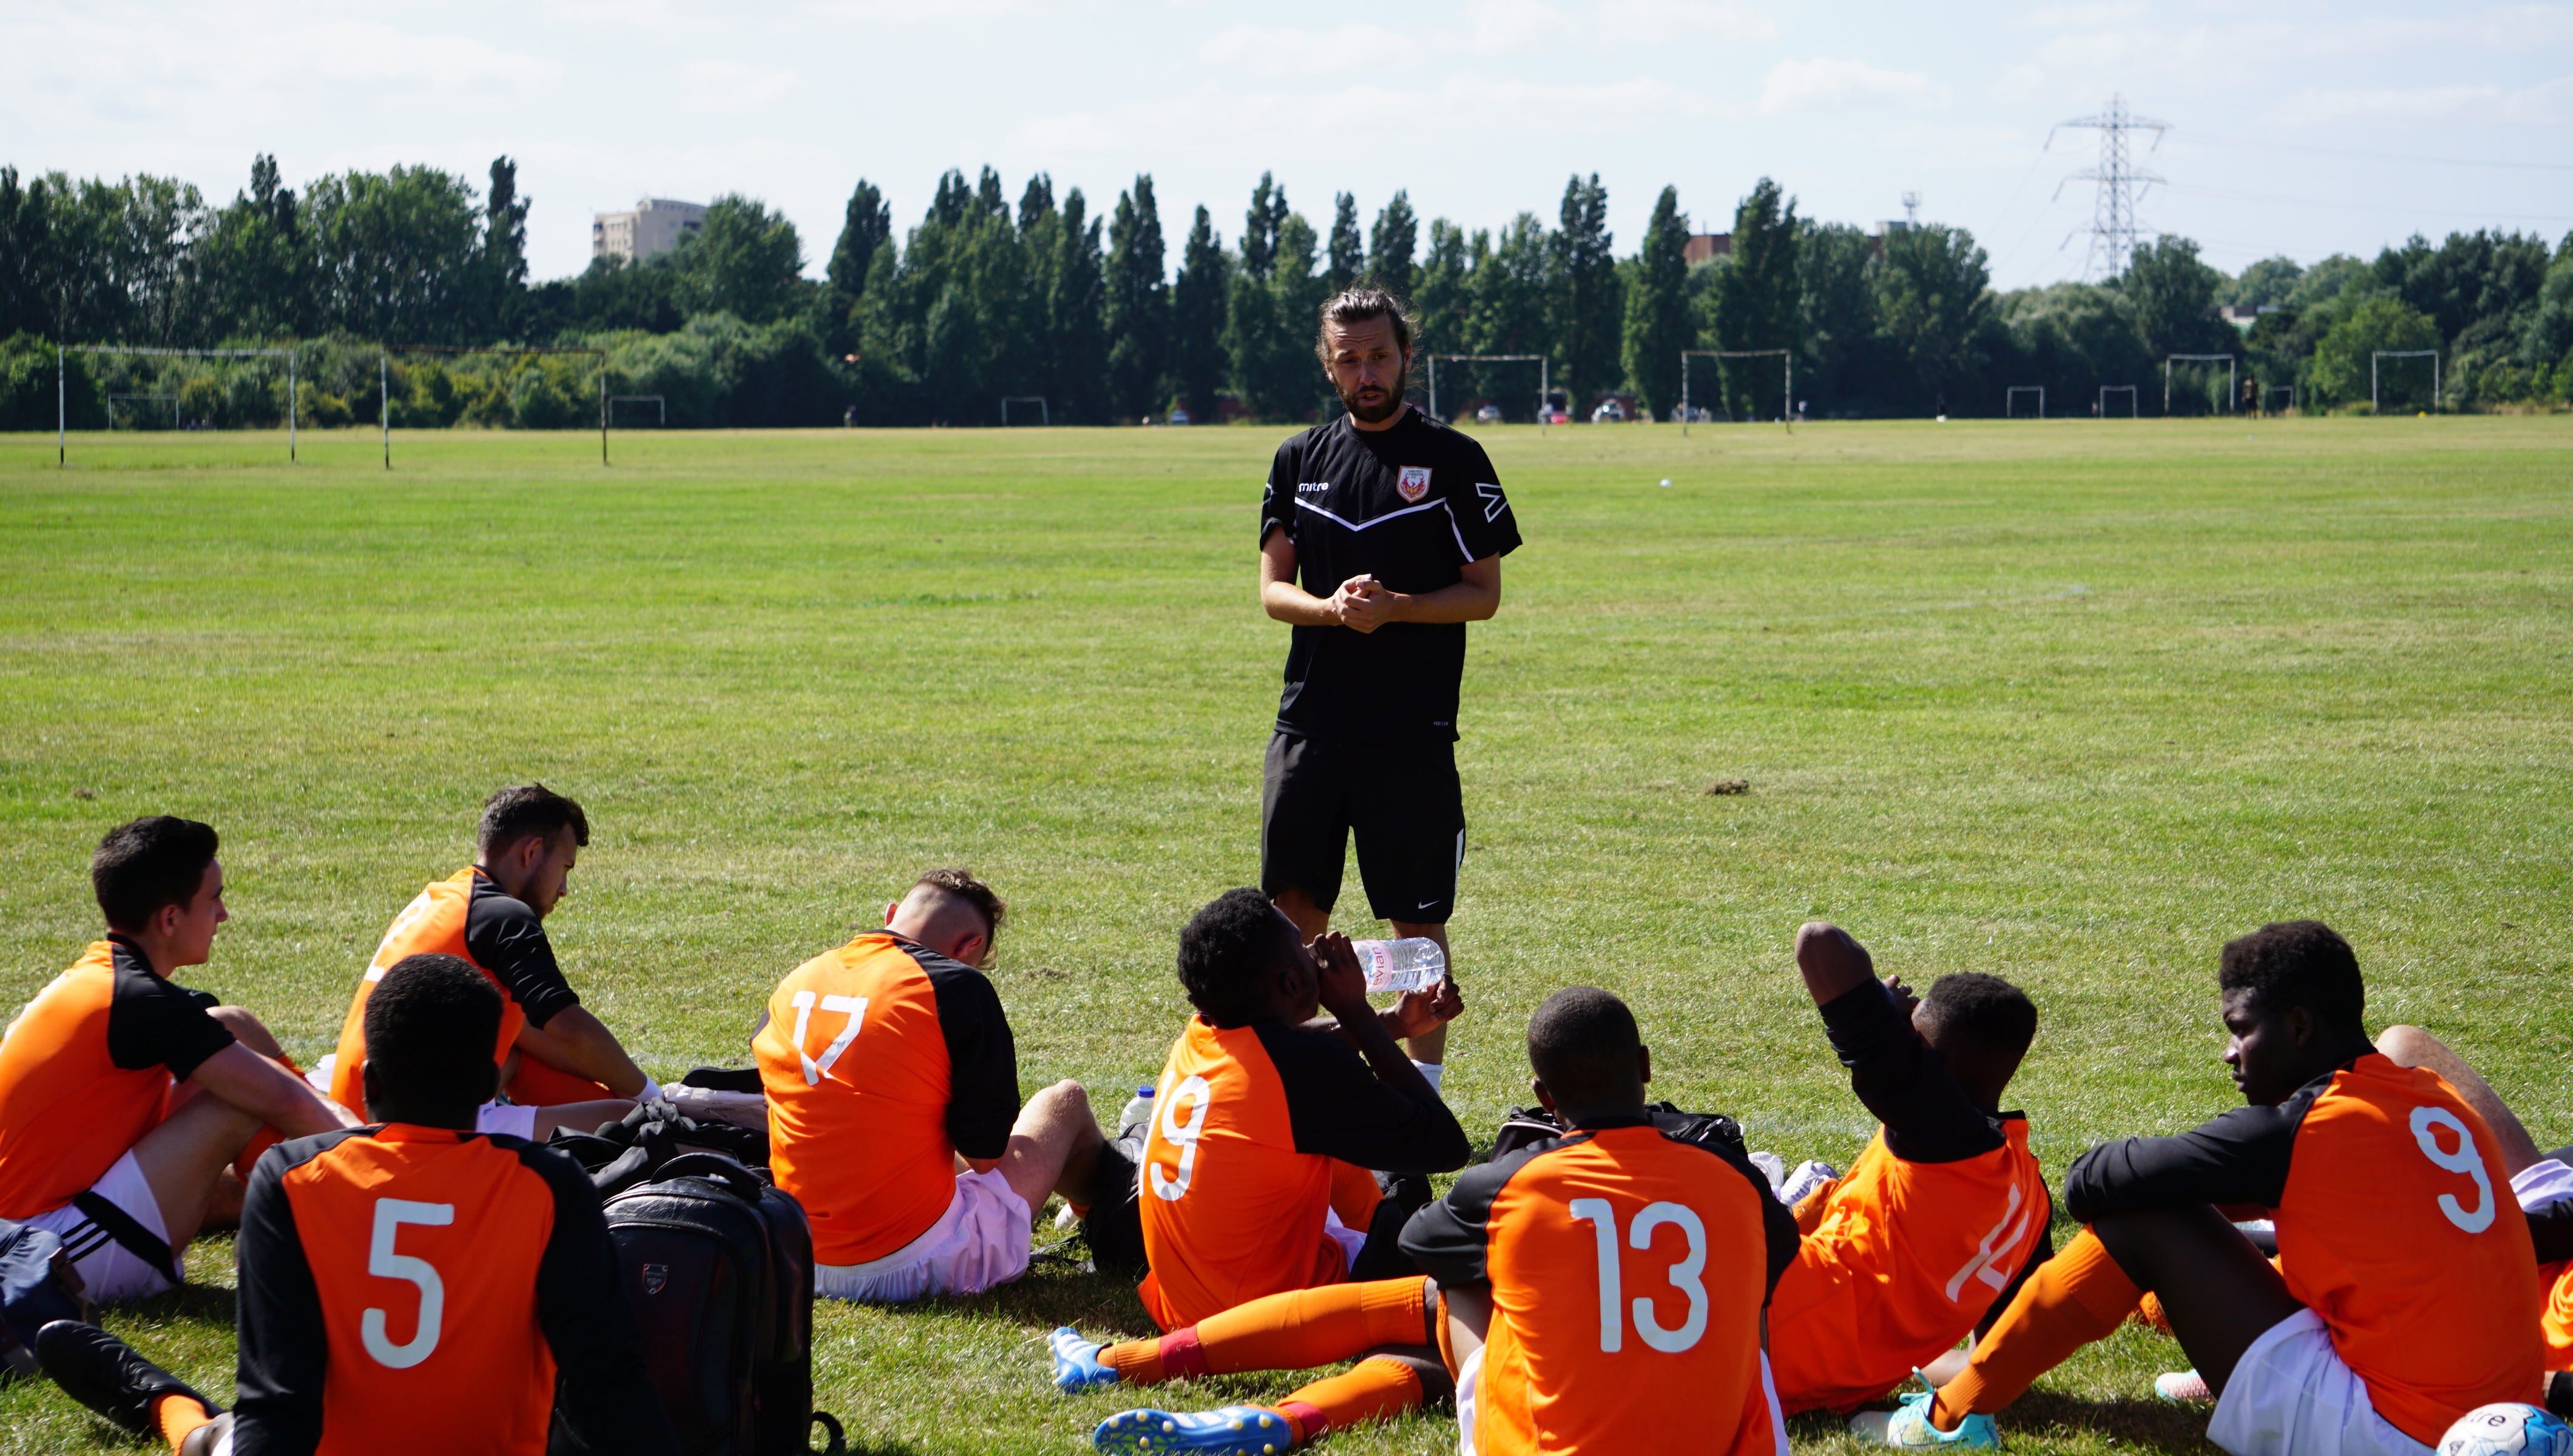 Coaching TIPS - KEEP THE KIDS MOTIVATED